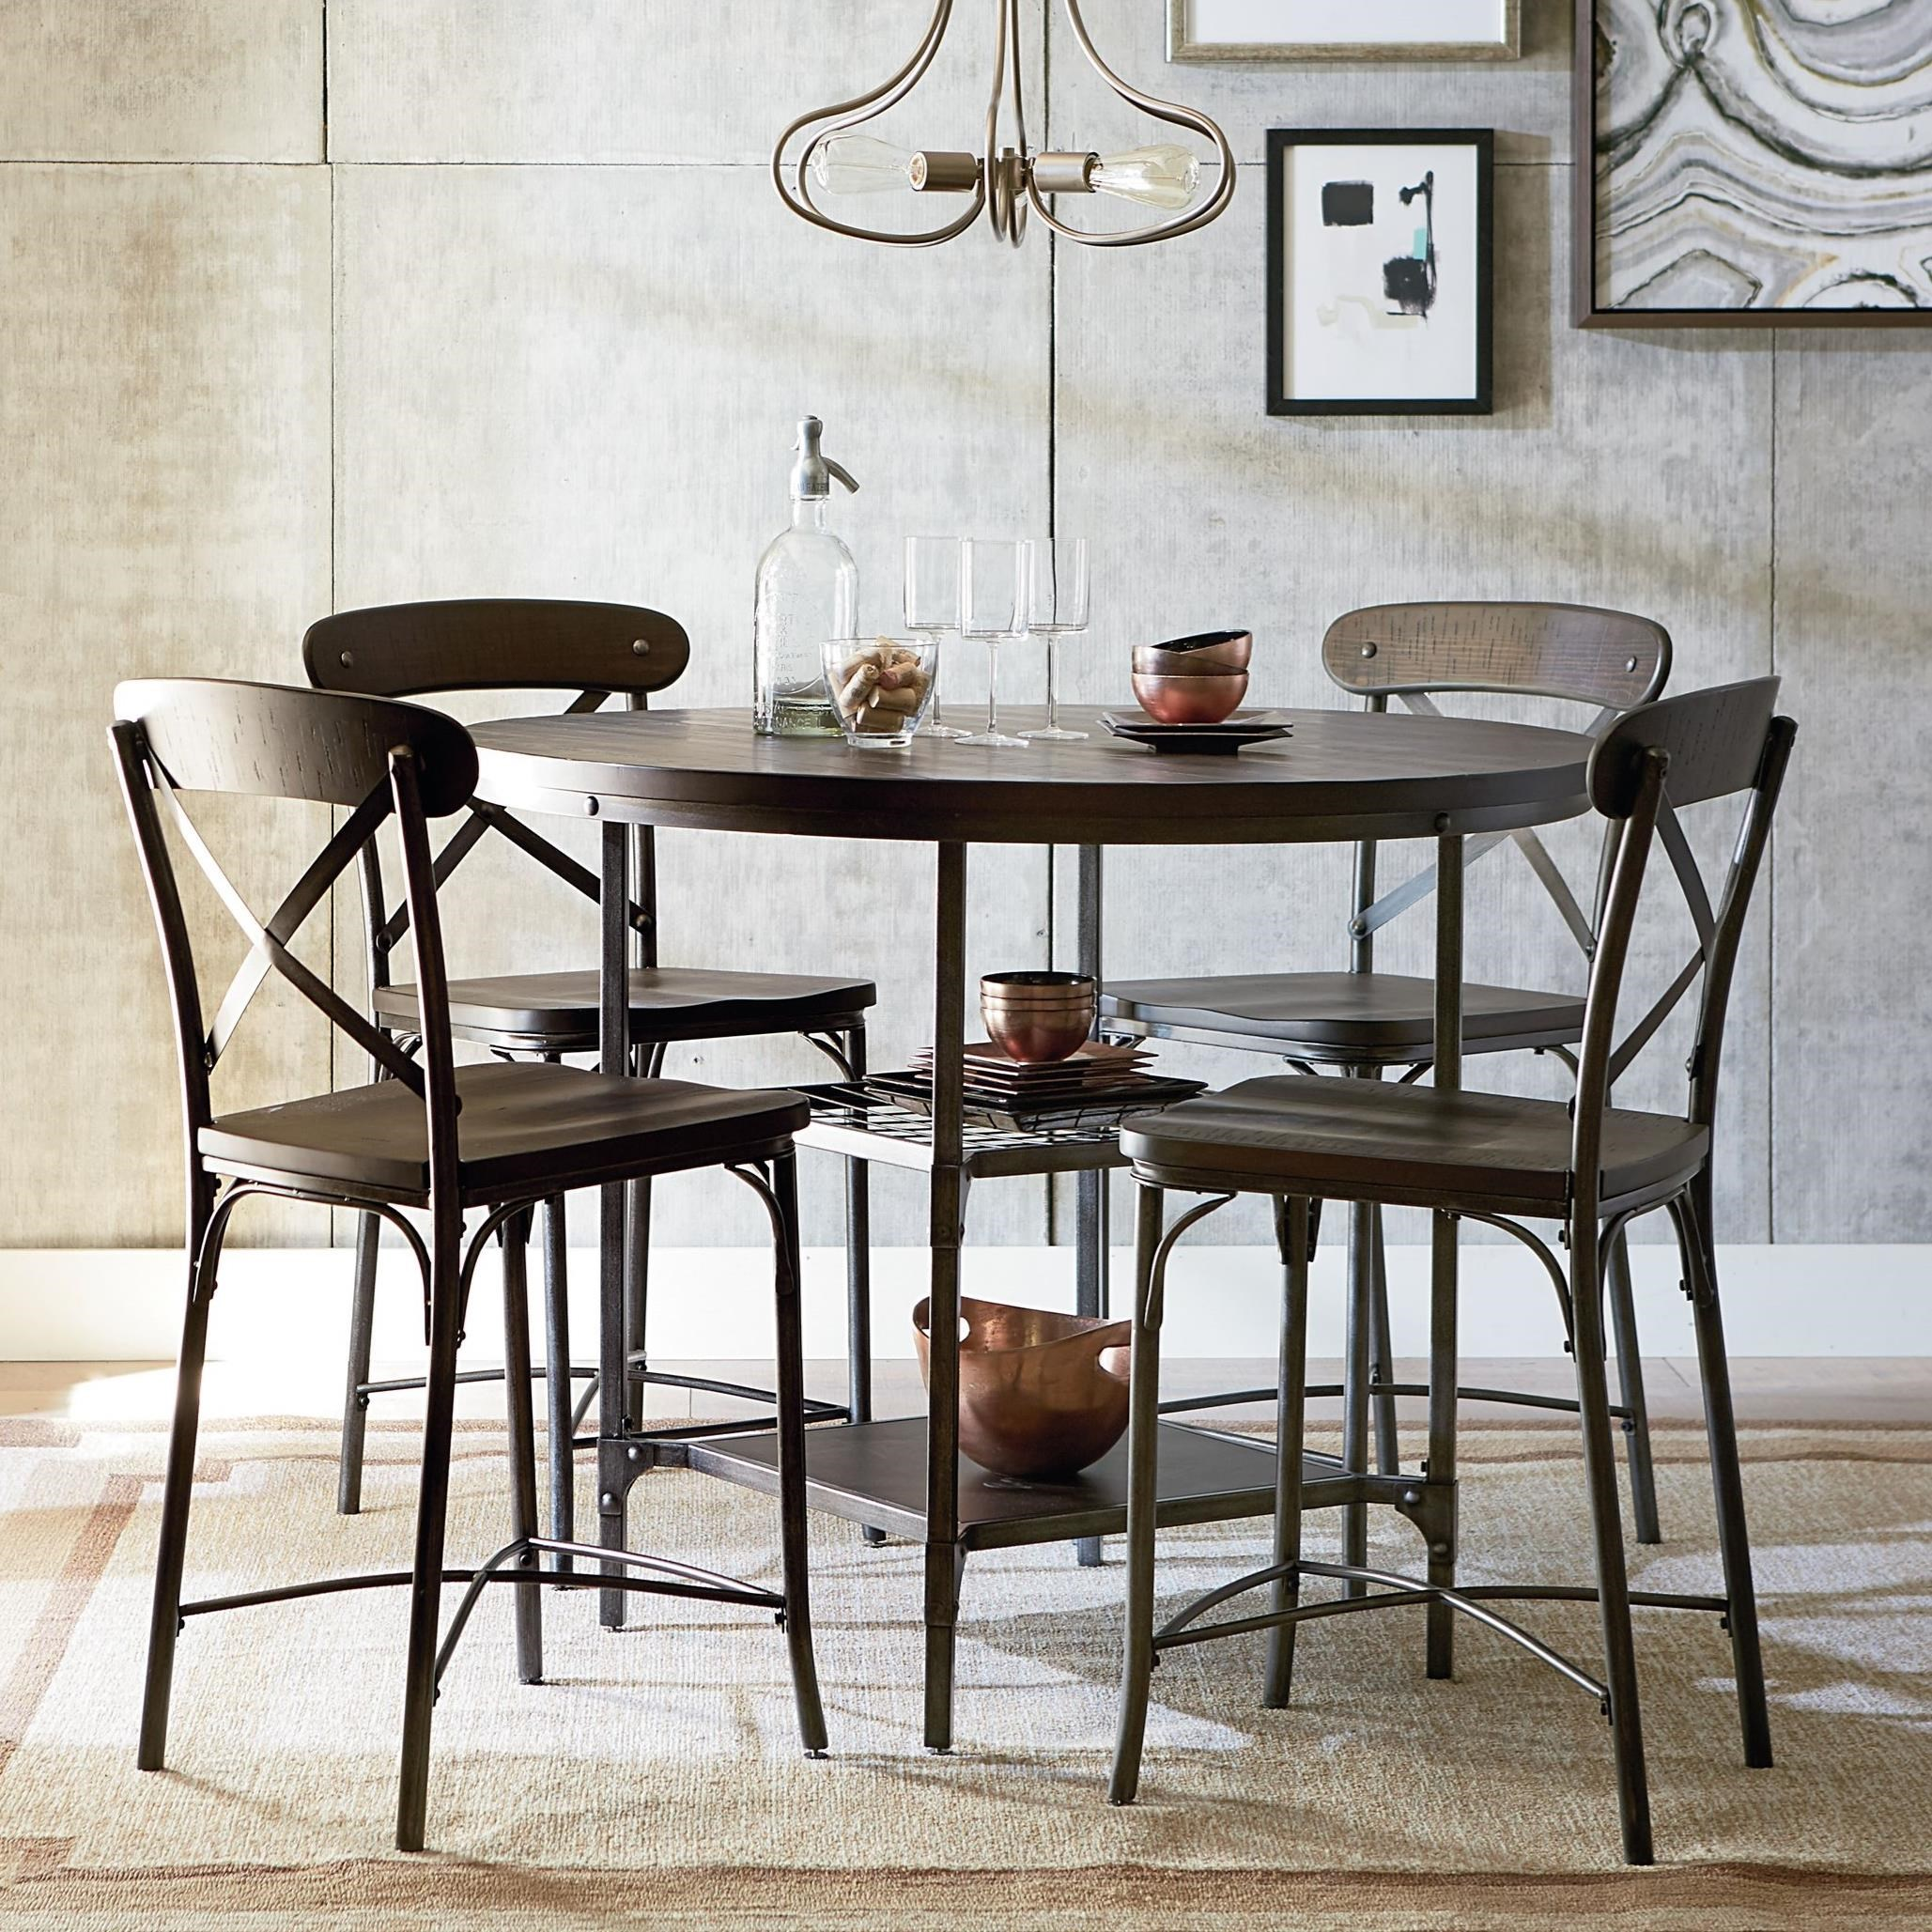 Standard furniture montvale rustic bar height dining set for Breakfast table set with stools